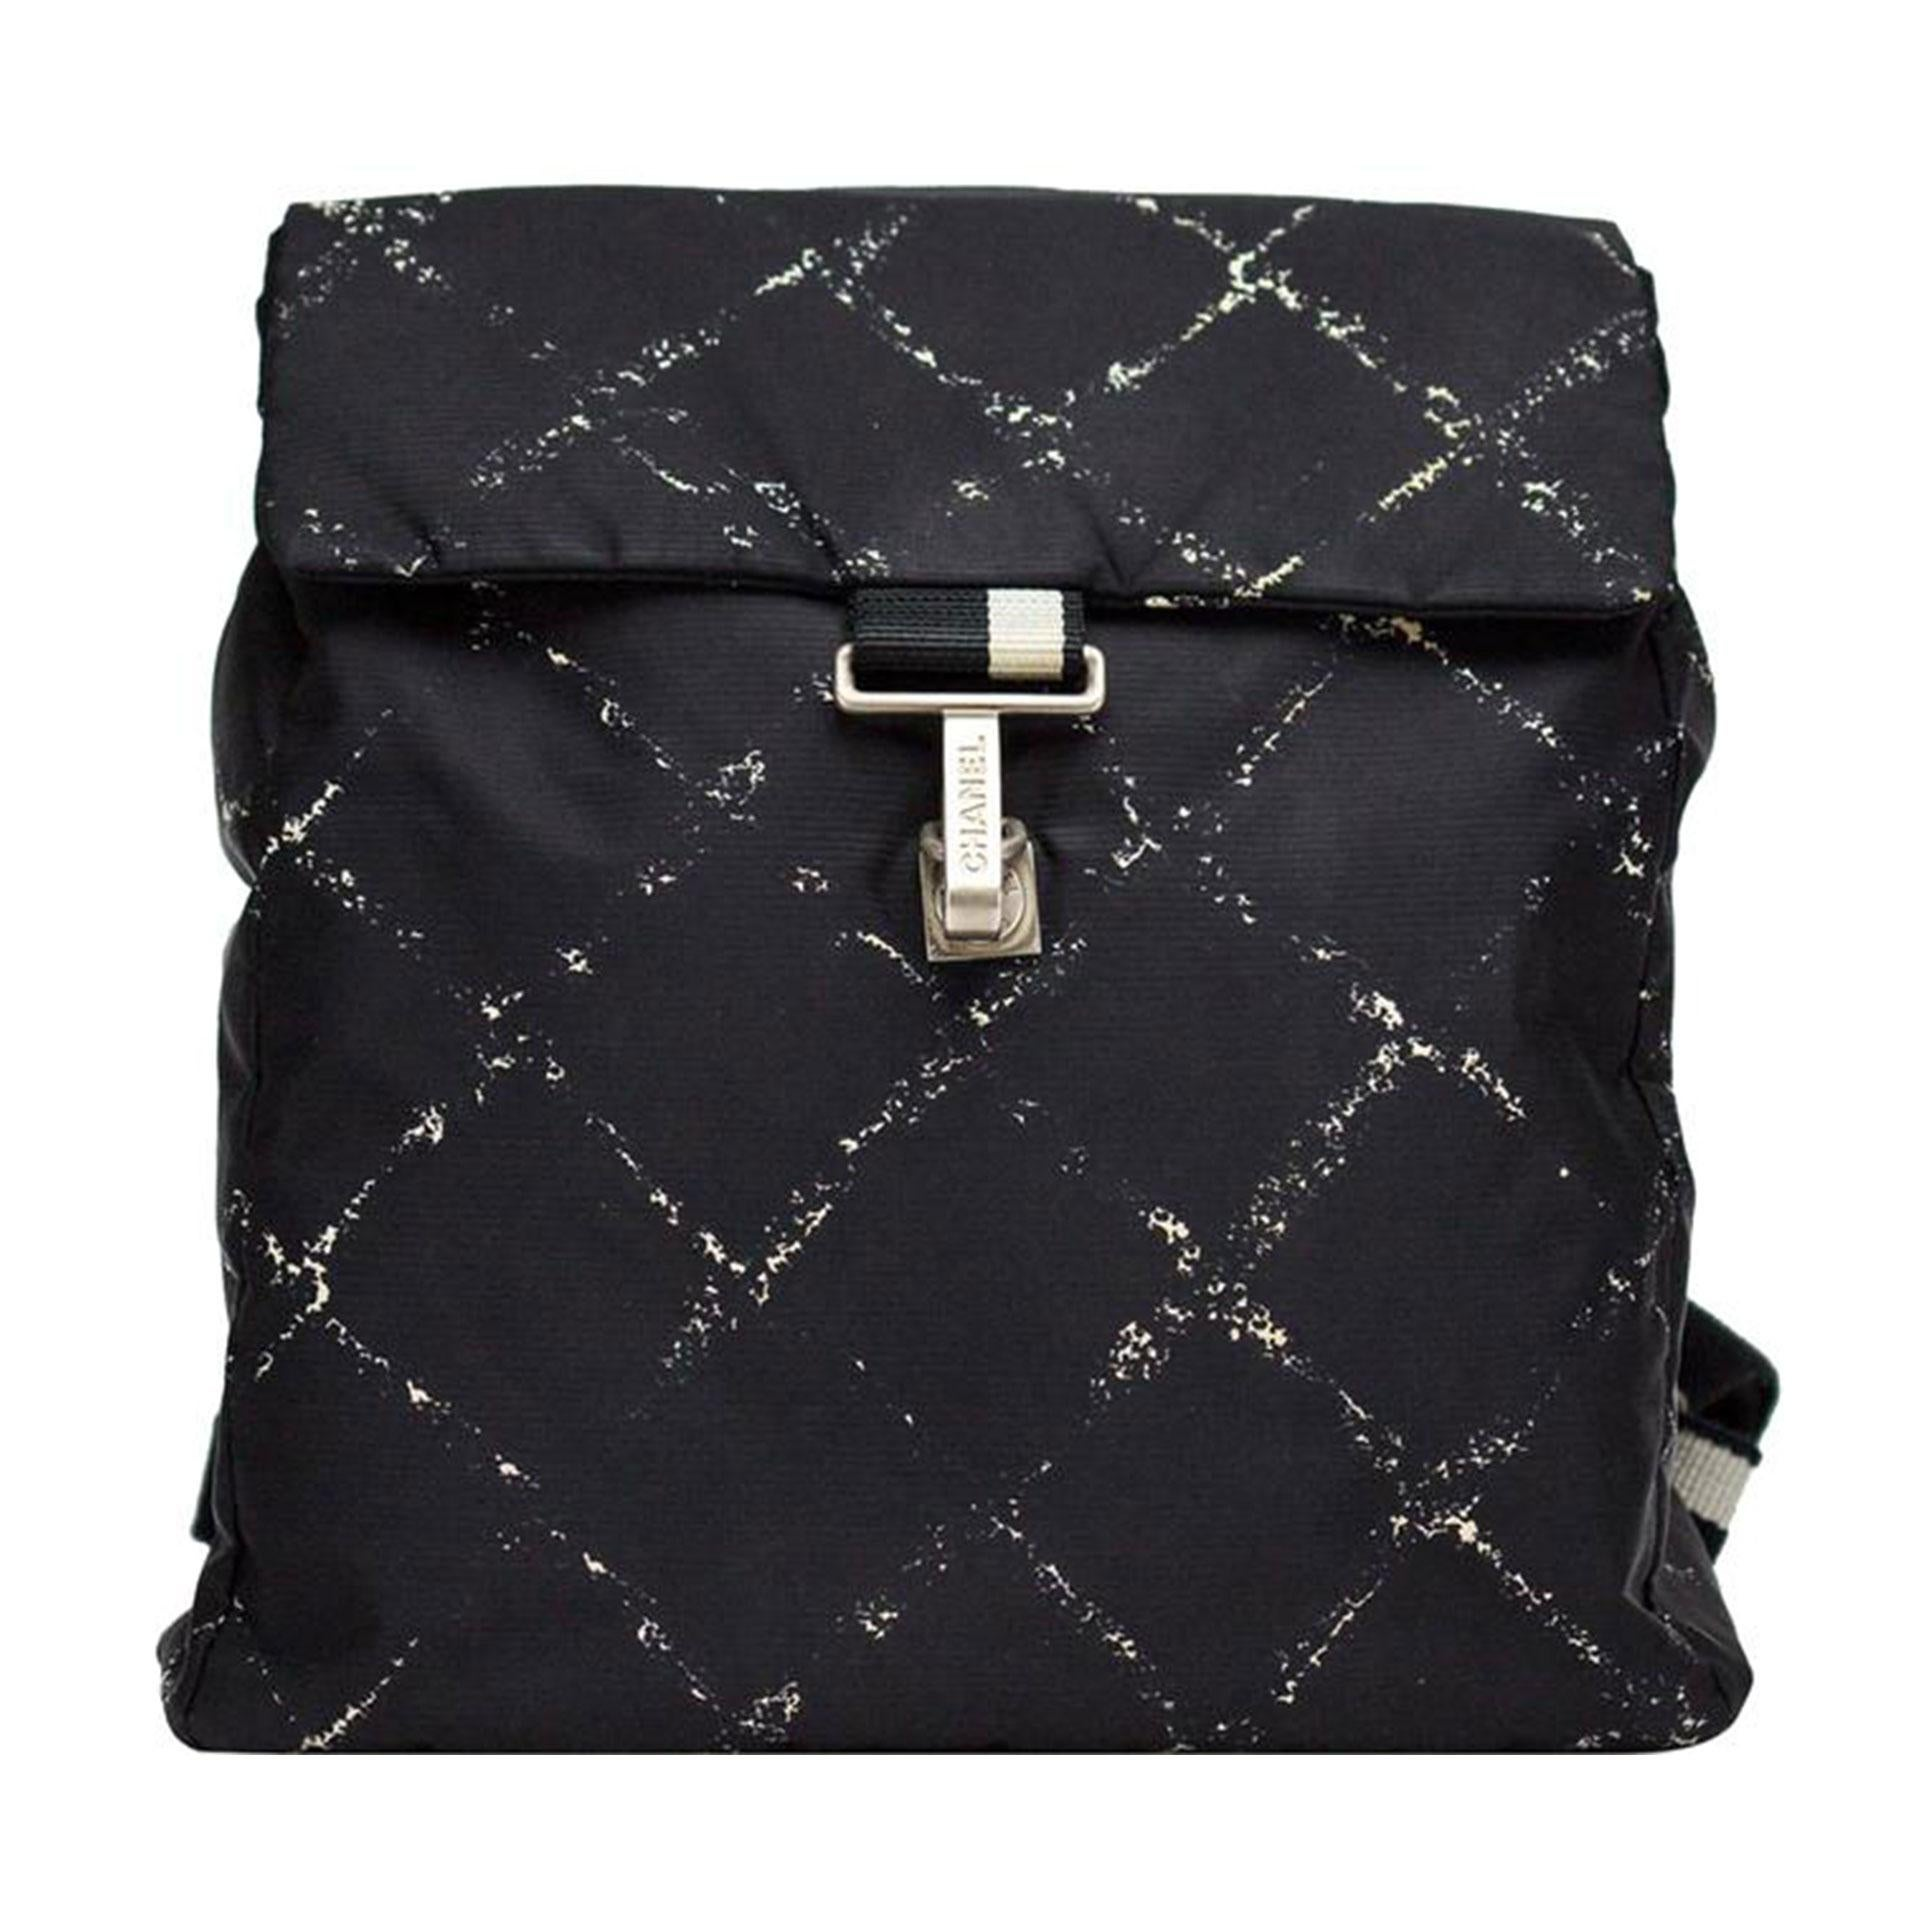 Chanel Vintage Diamond Quilted Graphic Stitched Black Nylon Backpack